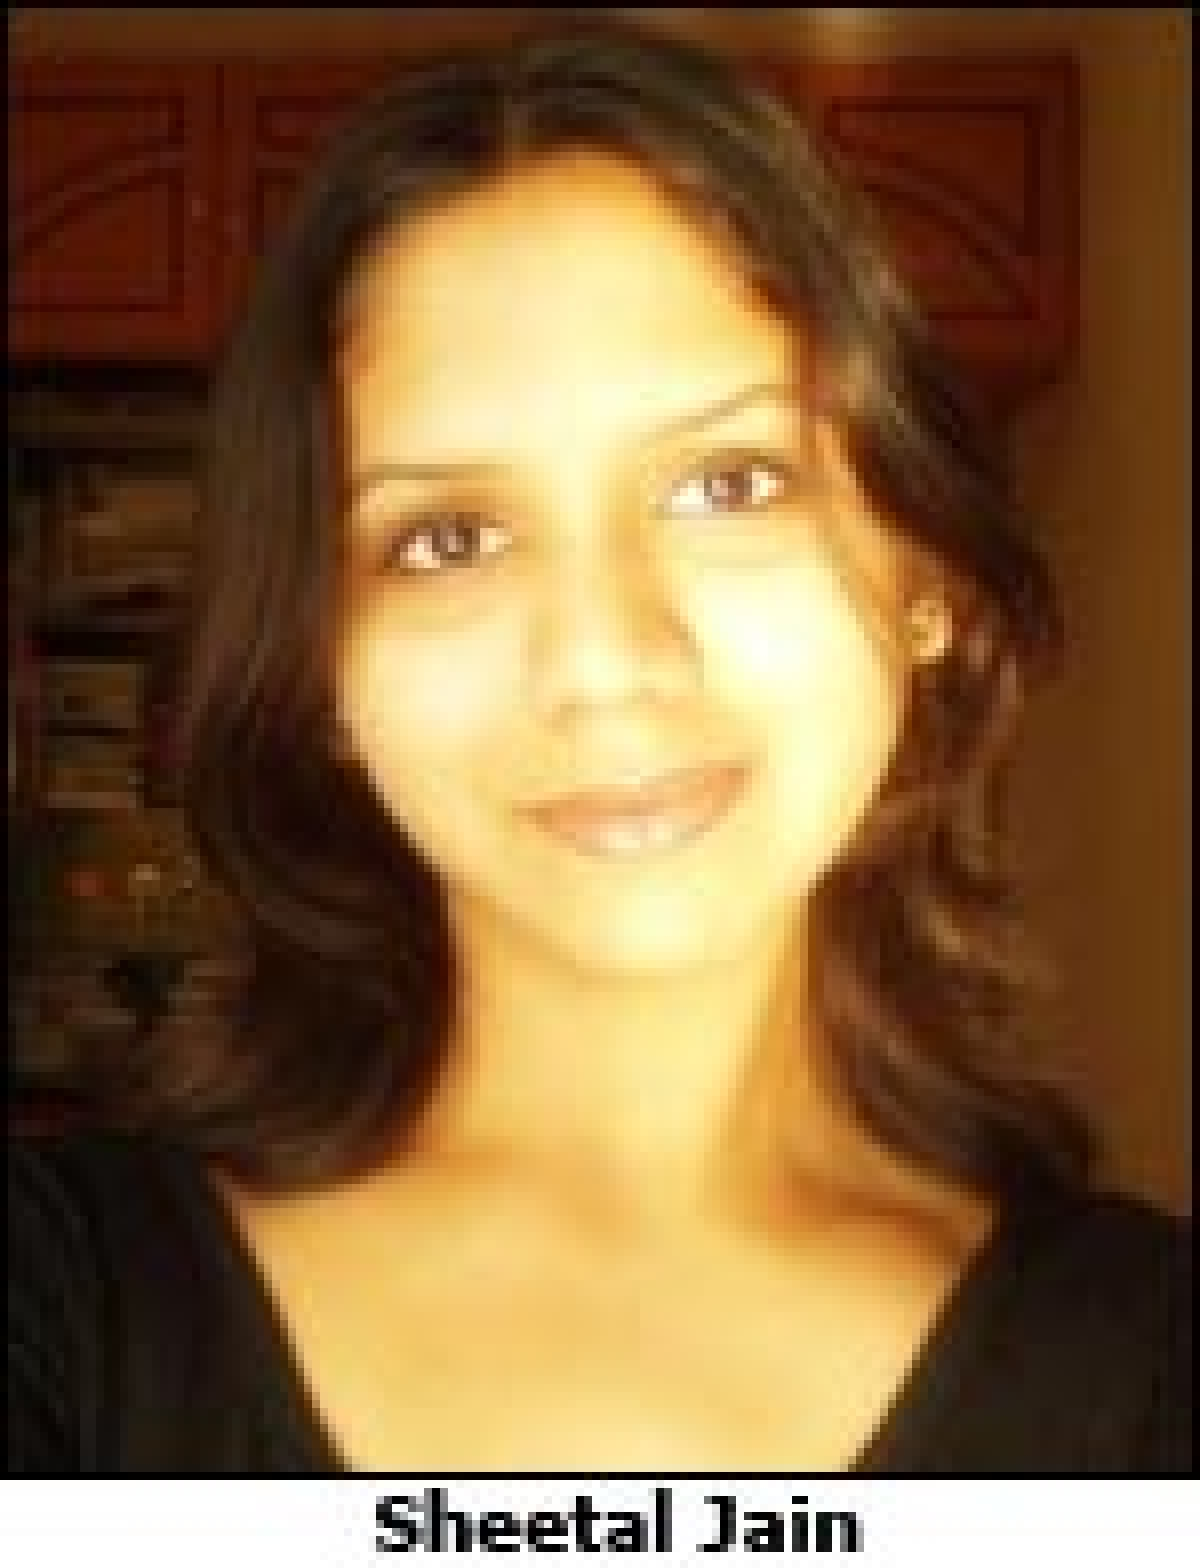 Milestone Brandcom ropes in Sheetal Jain as AVP, strategy & planning